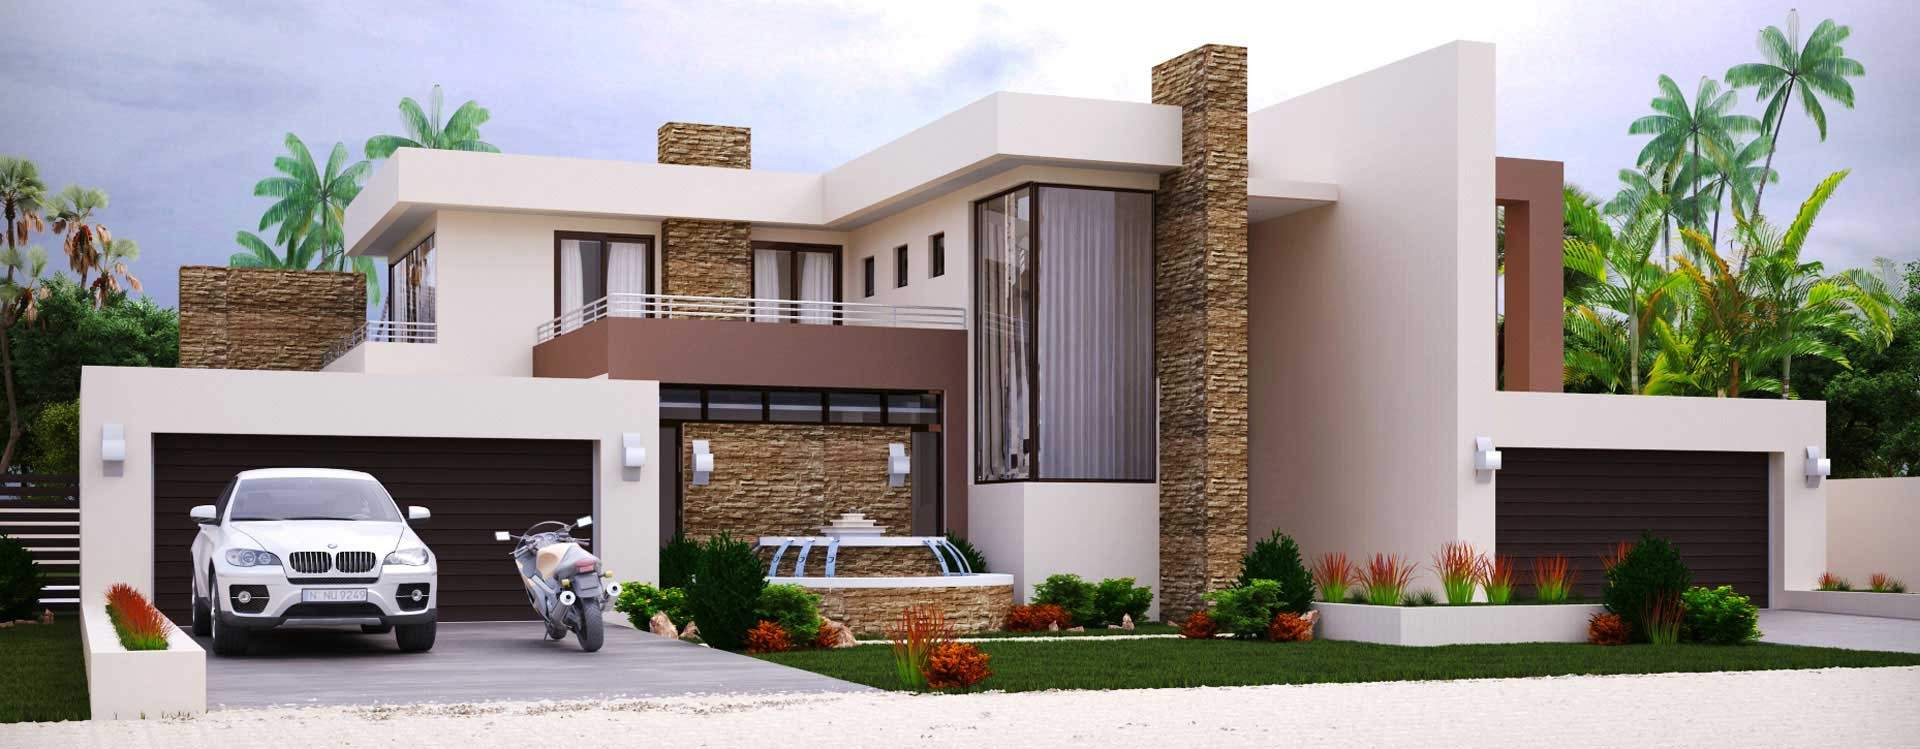 House Plans South Africa Home Designs Floor